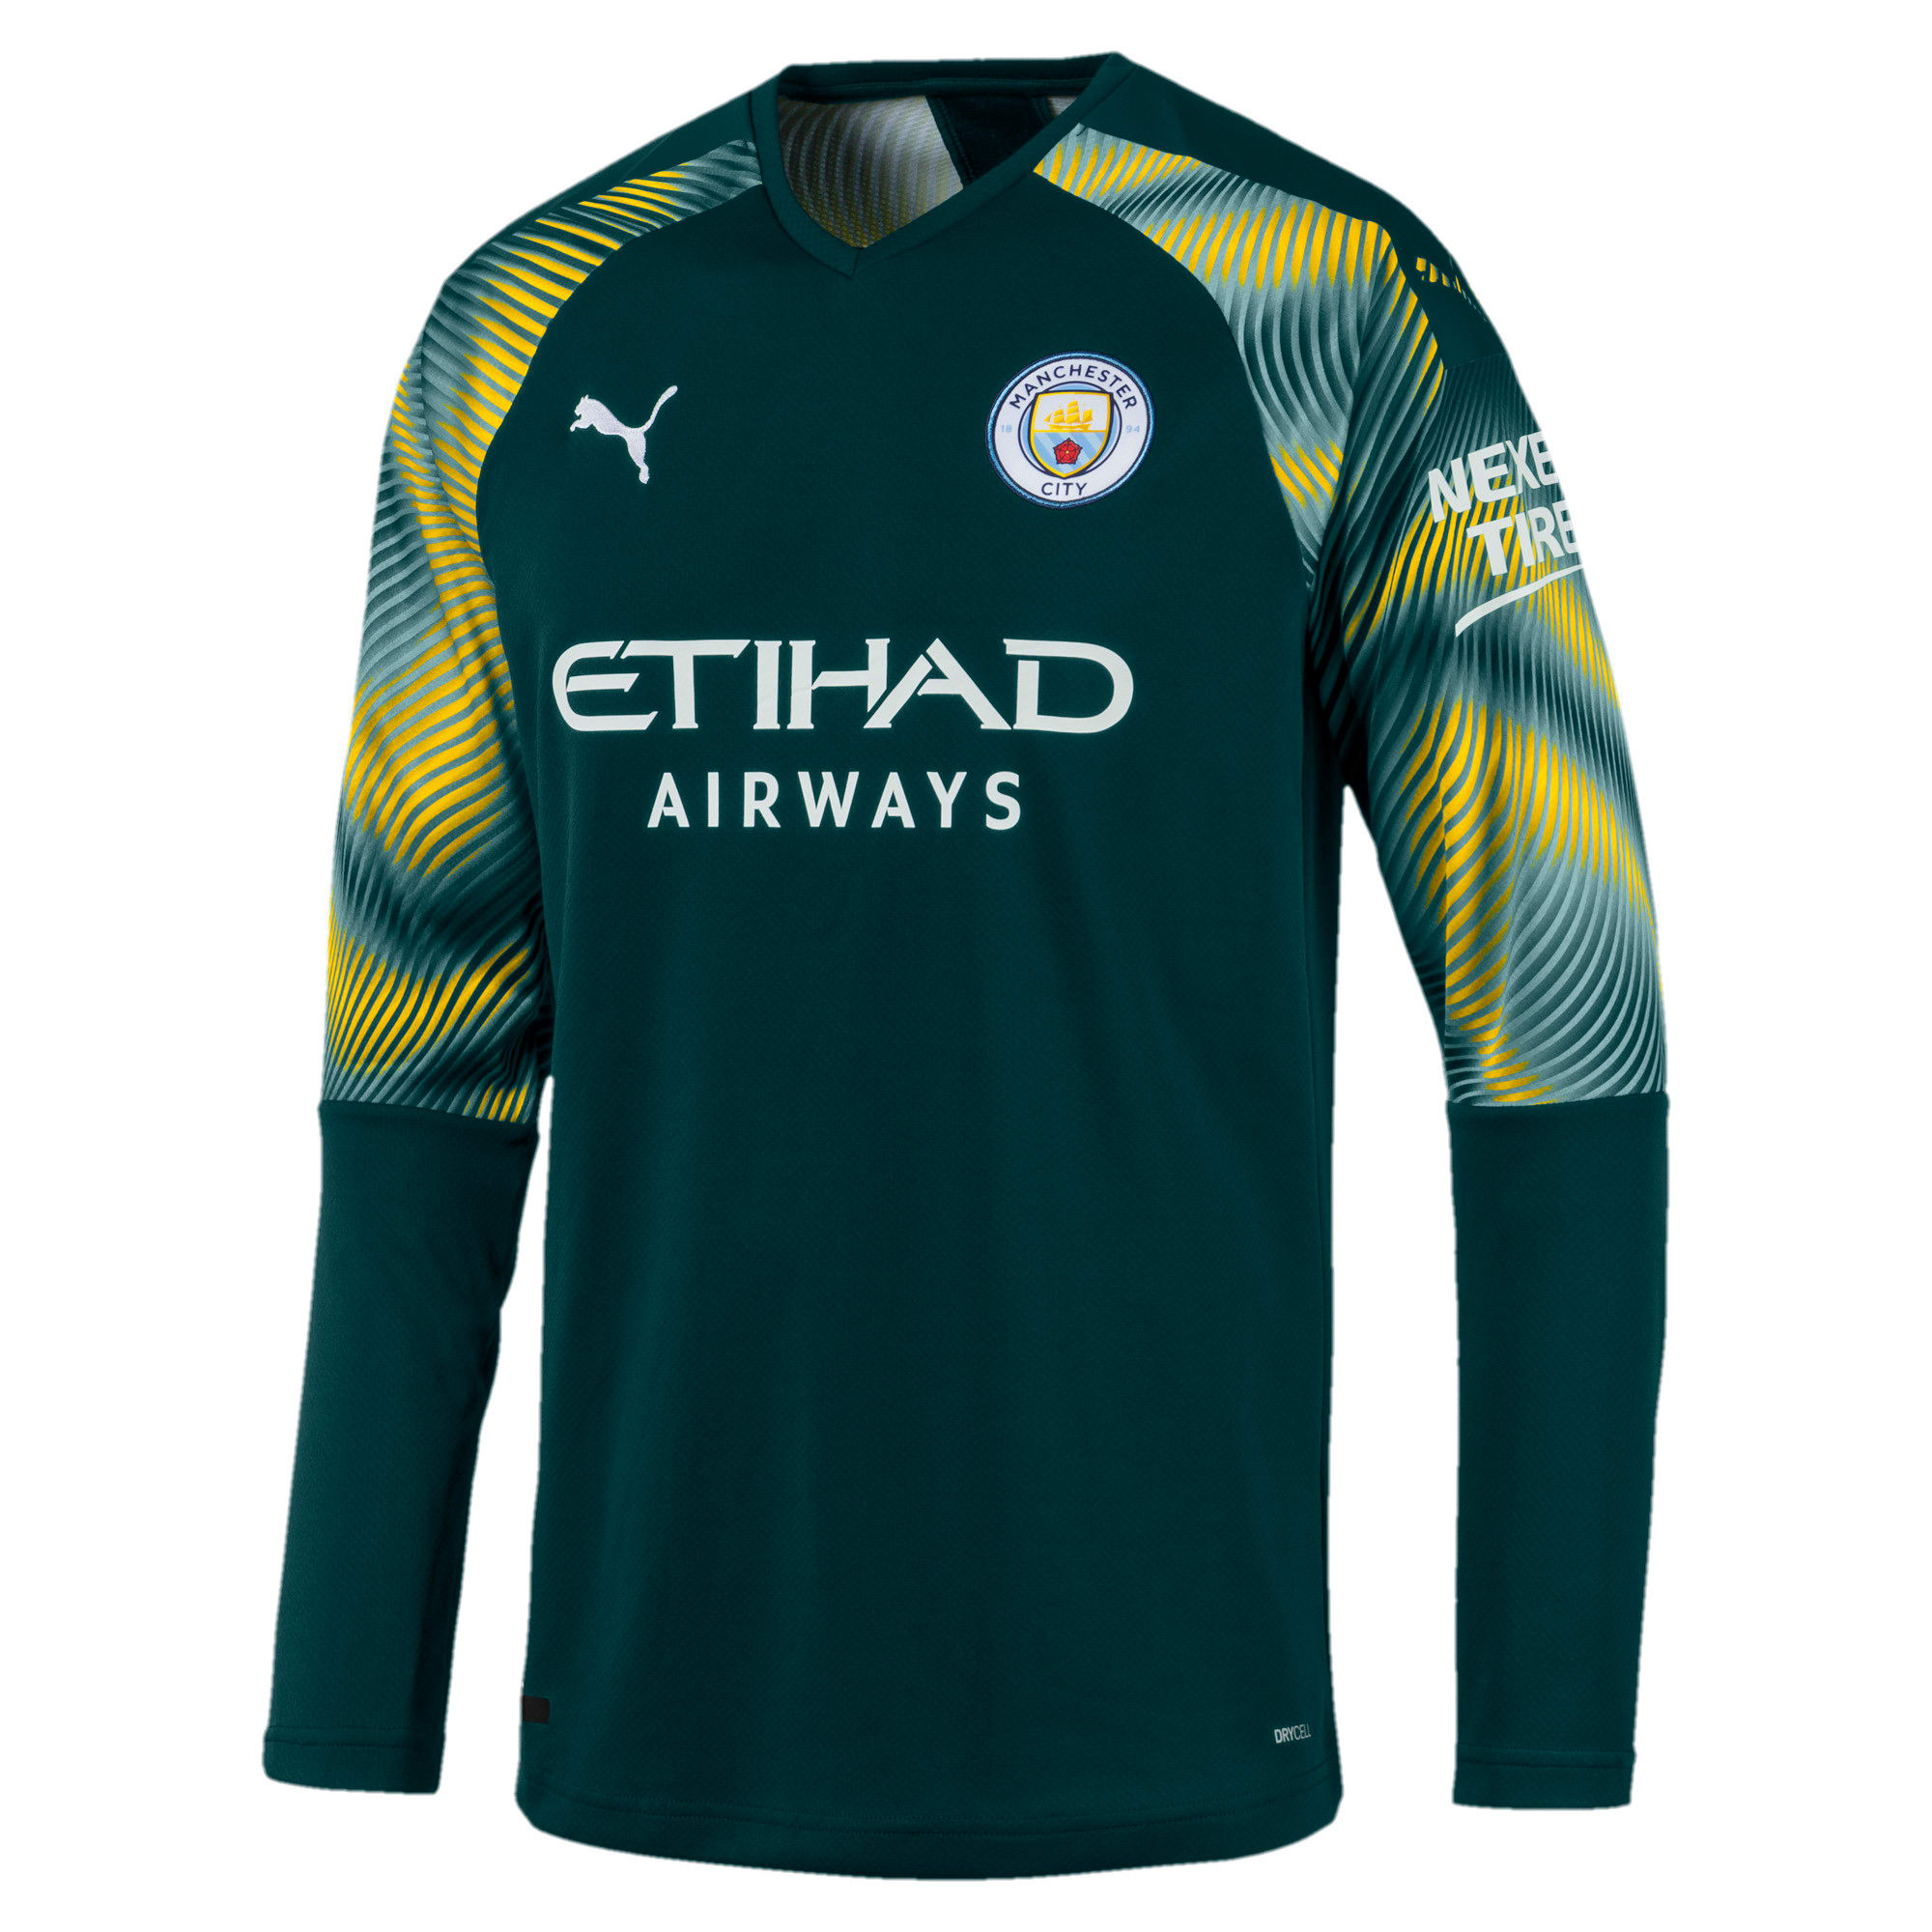 the best attitude 1ee50 74341 Man City Men's Replica Goalkeeper Jersey